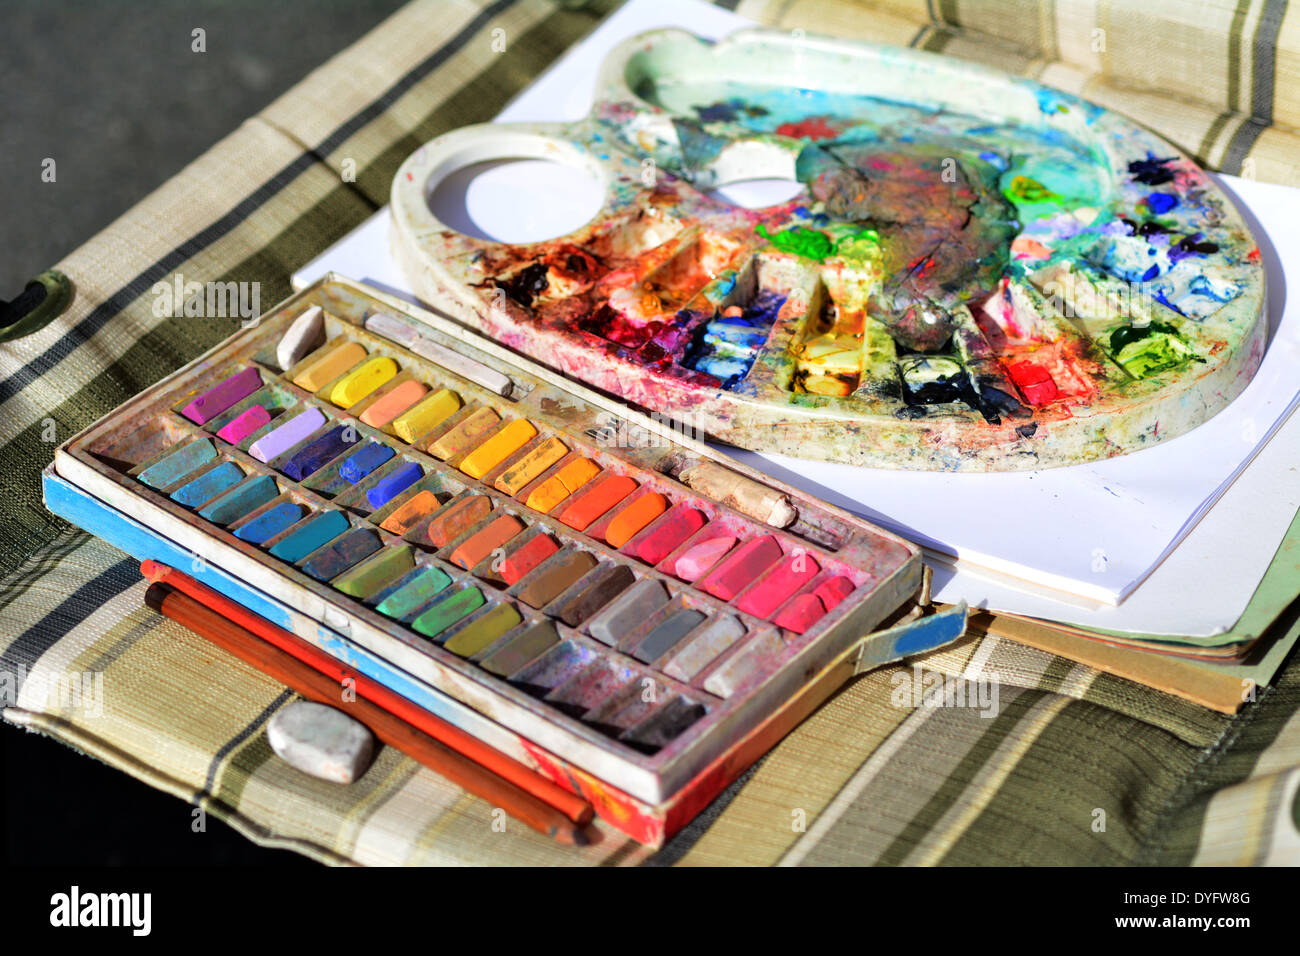 Used colorful chalk colors and colors pallet on artist chair. - Stock Image